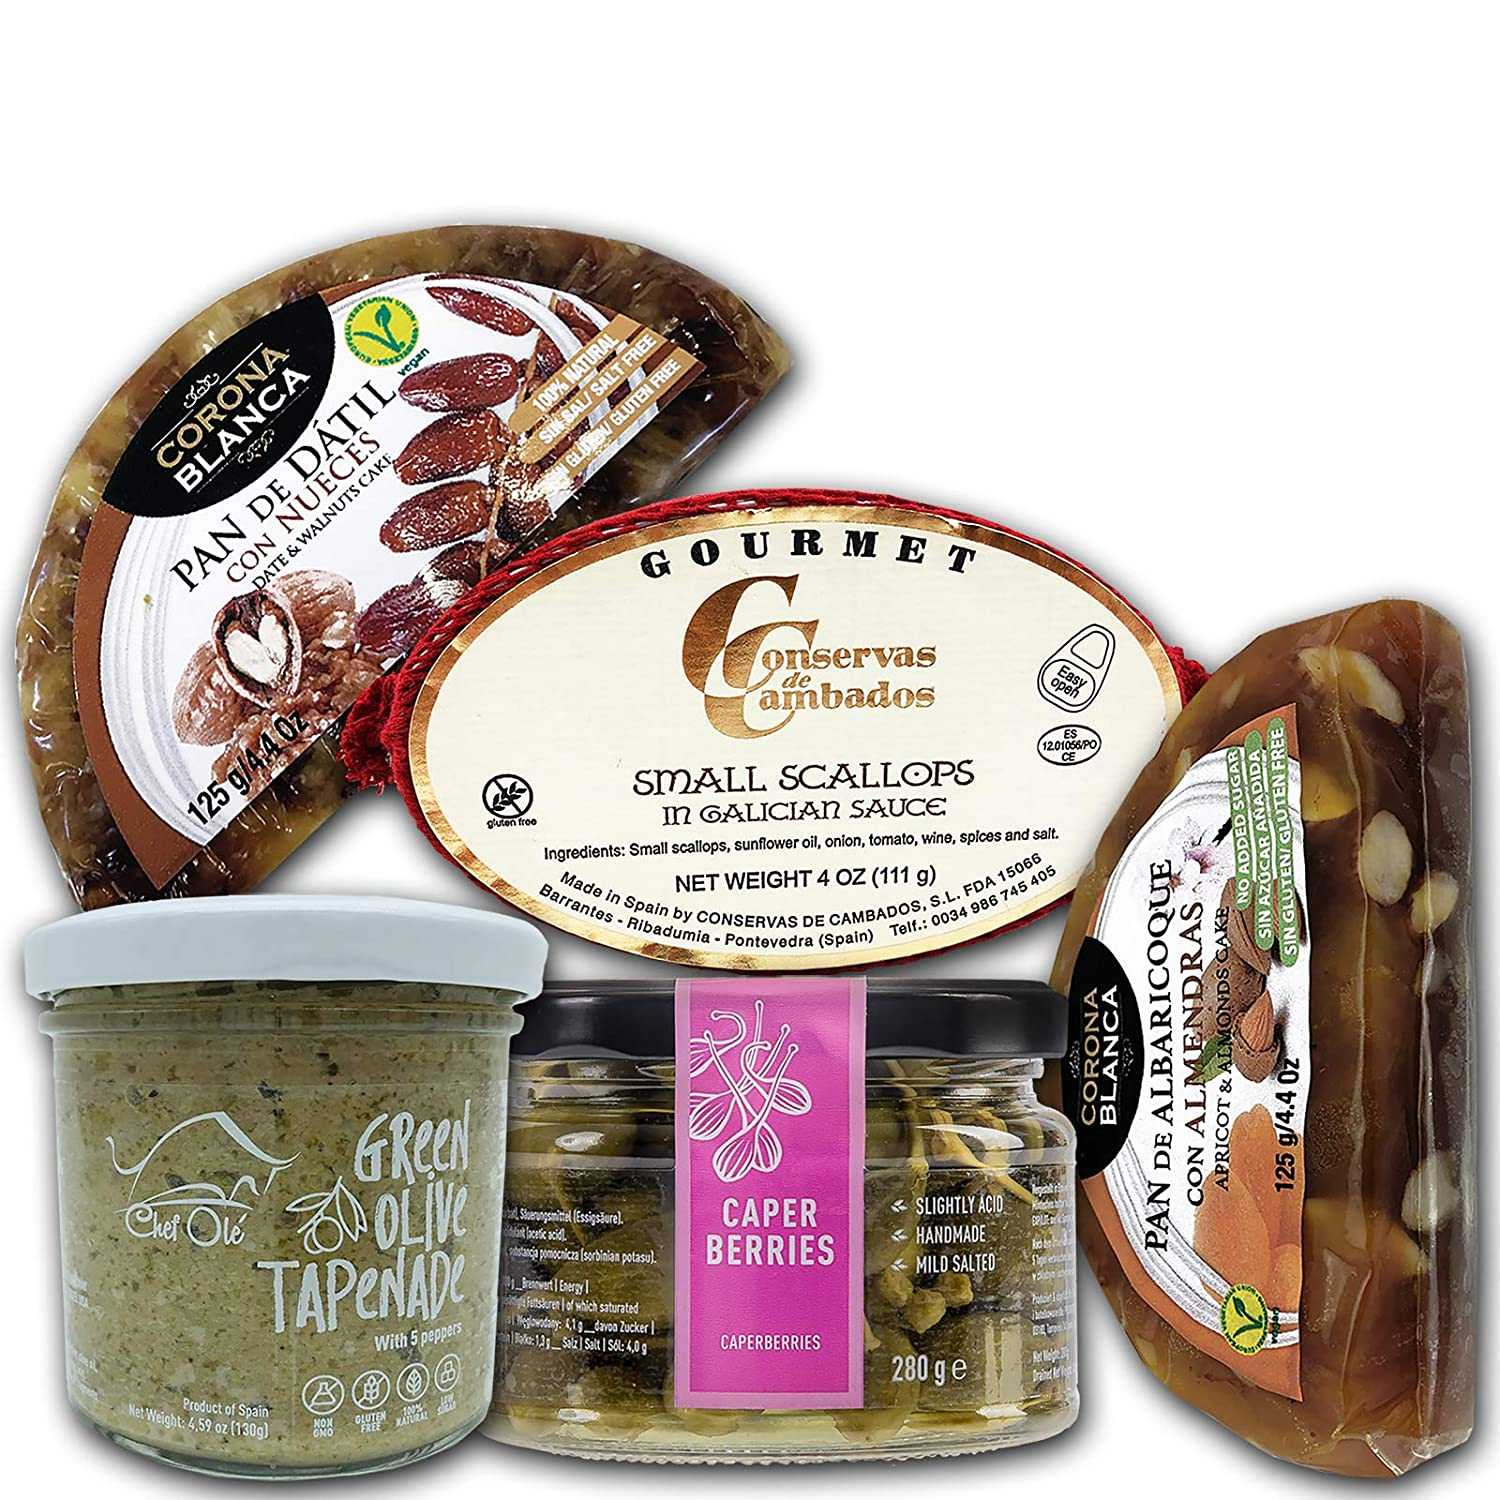 A Healthy Gourmet selection of 5 Artisan appetizers from Spain. Foodies, this One is for You. Time to Upgrade Your Snack.Natural.Non-Gmo.Low Sugar.No-Additives.Gluten-Free.Triana Tapas Ready.